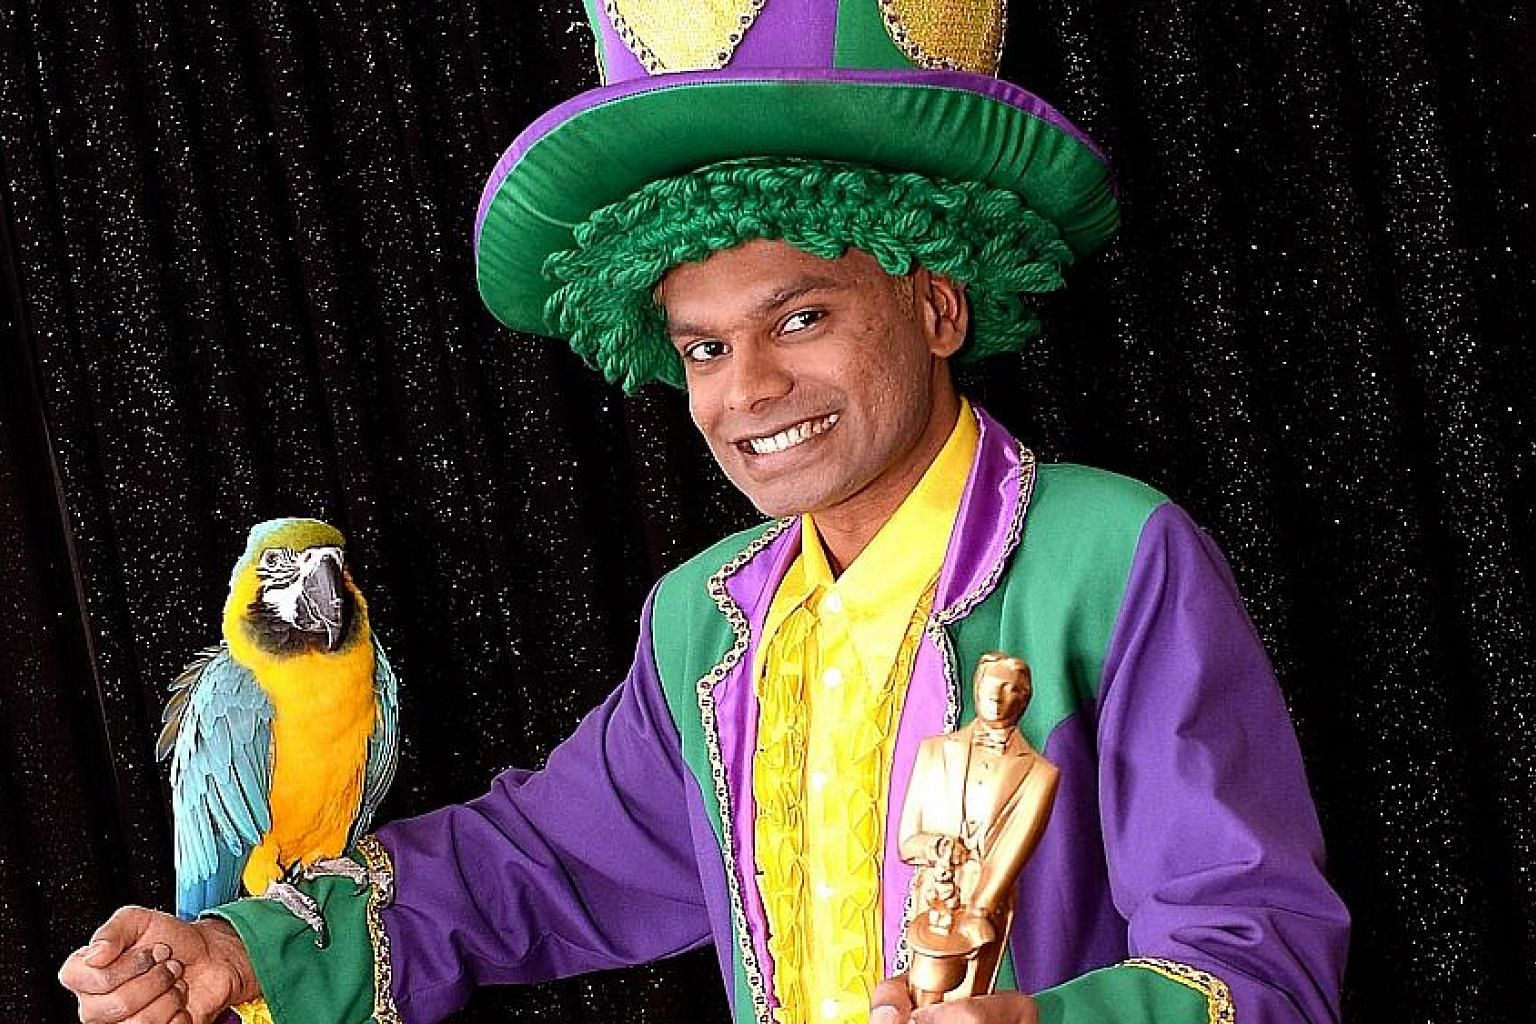 Chandran, who became famous after winning an award by the US-based International Magicians Society in 2014, allegedly acted as a PIC broker and received about $400,000 from the payouts.